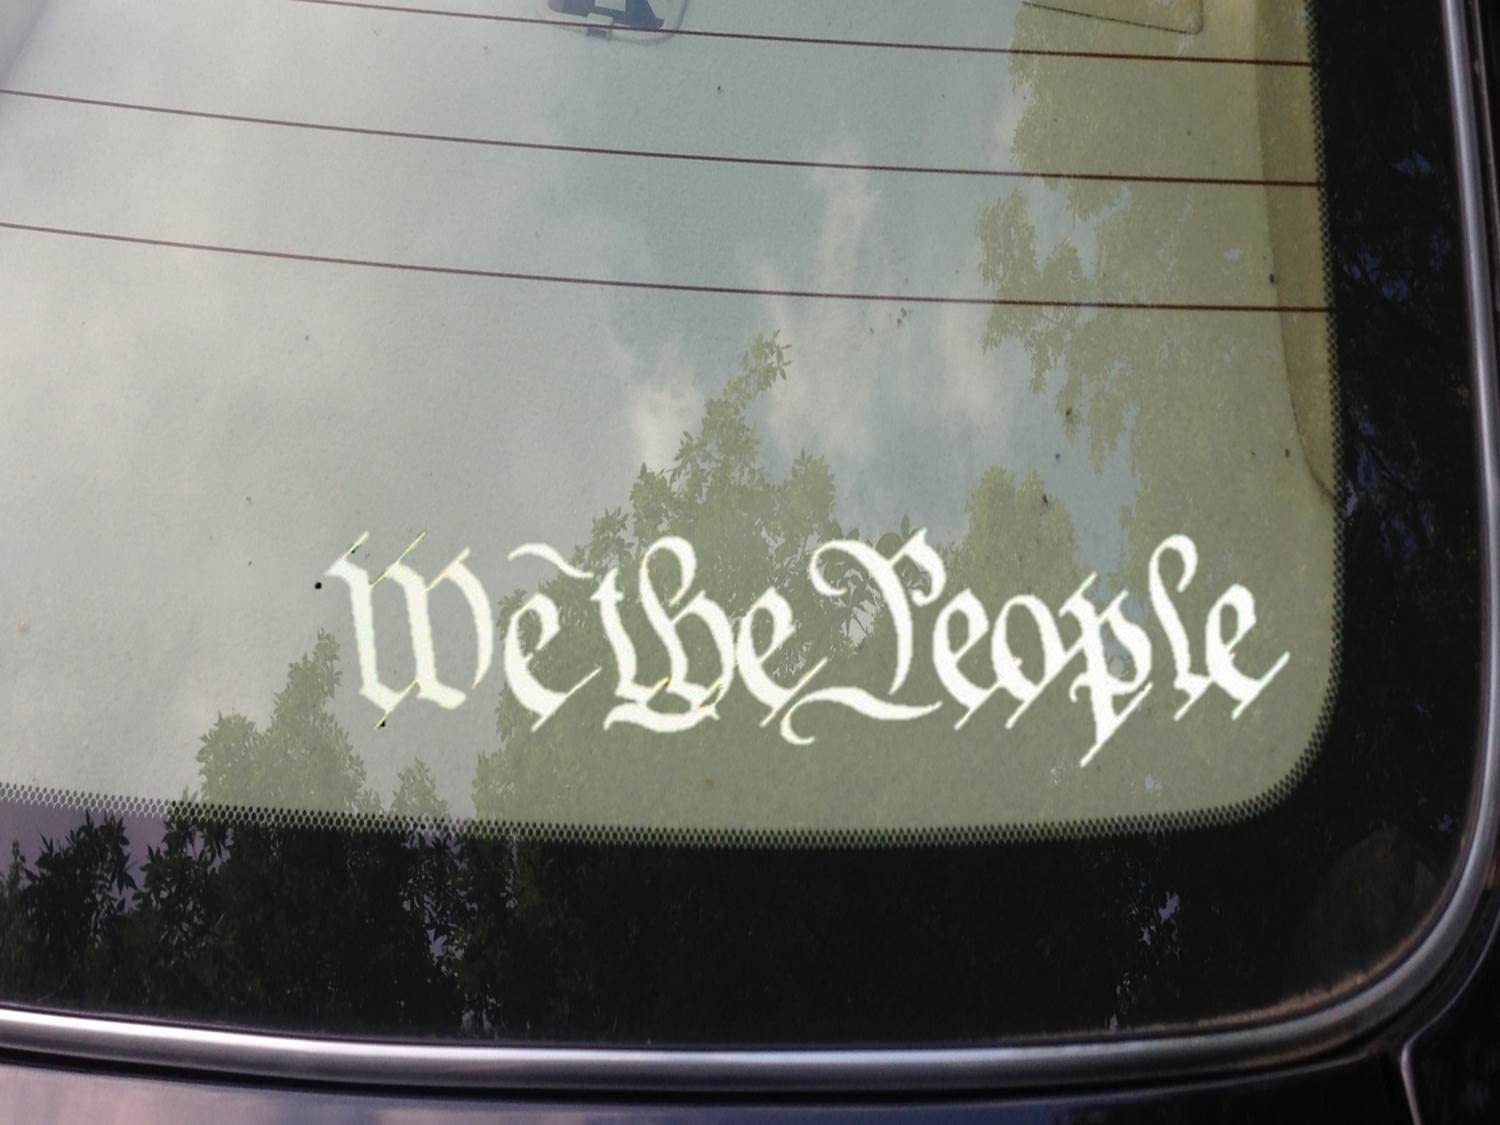 "We the People Decal Vinyl Sticker Second Amendment Car Window Laptop (White 6"")"